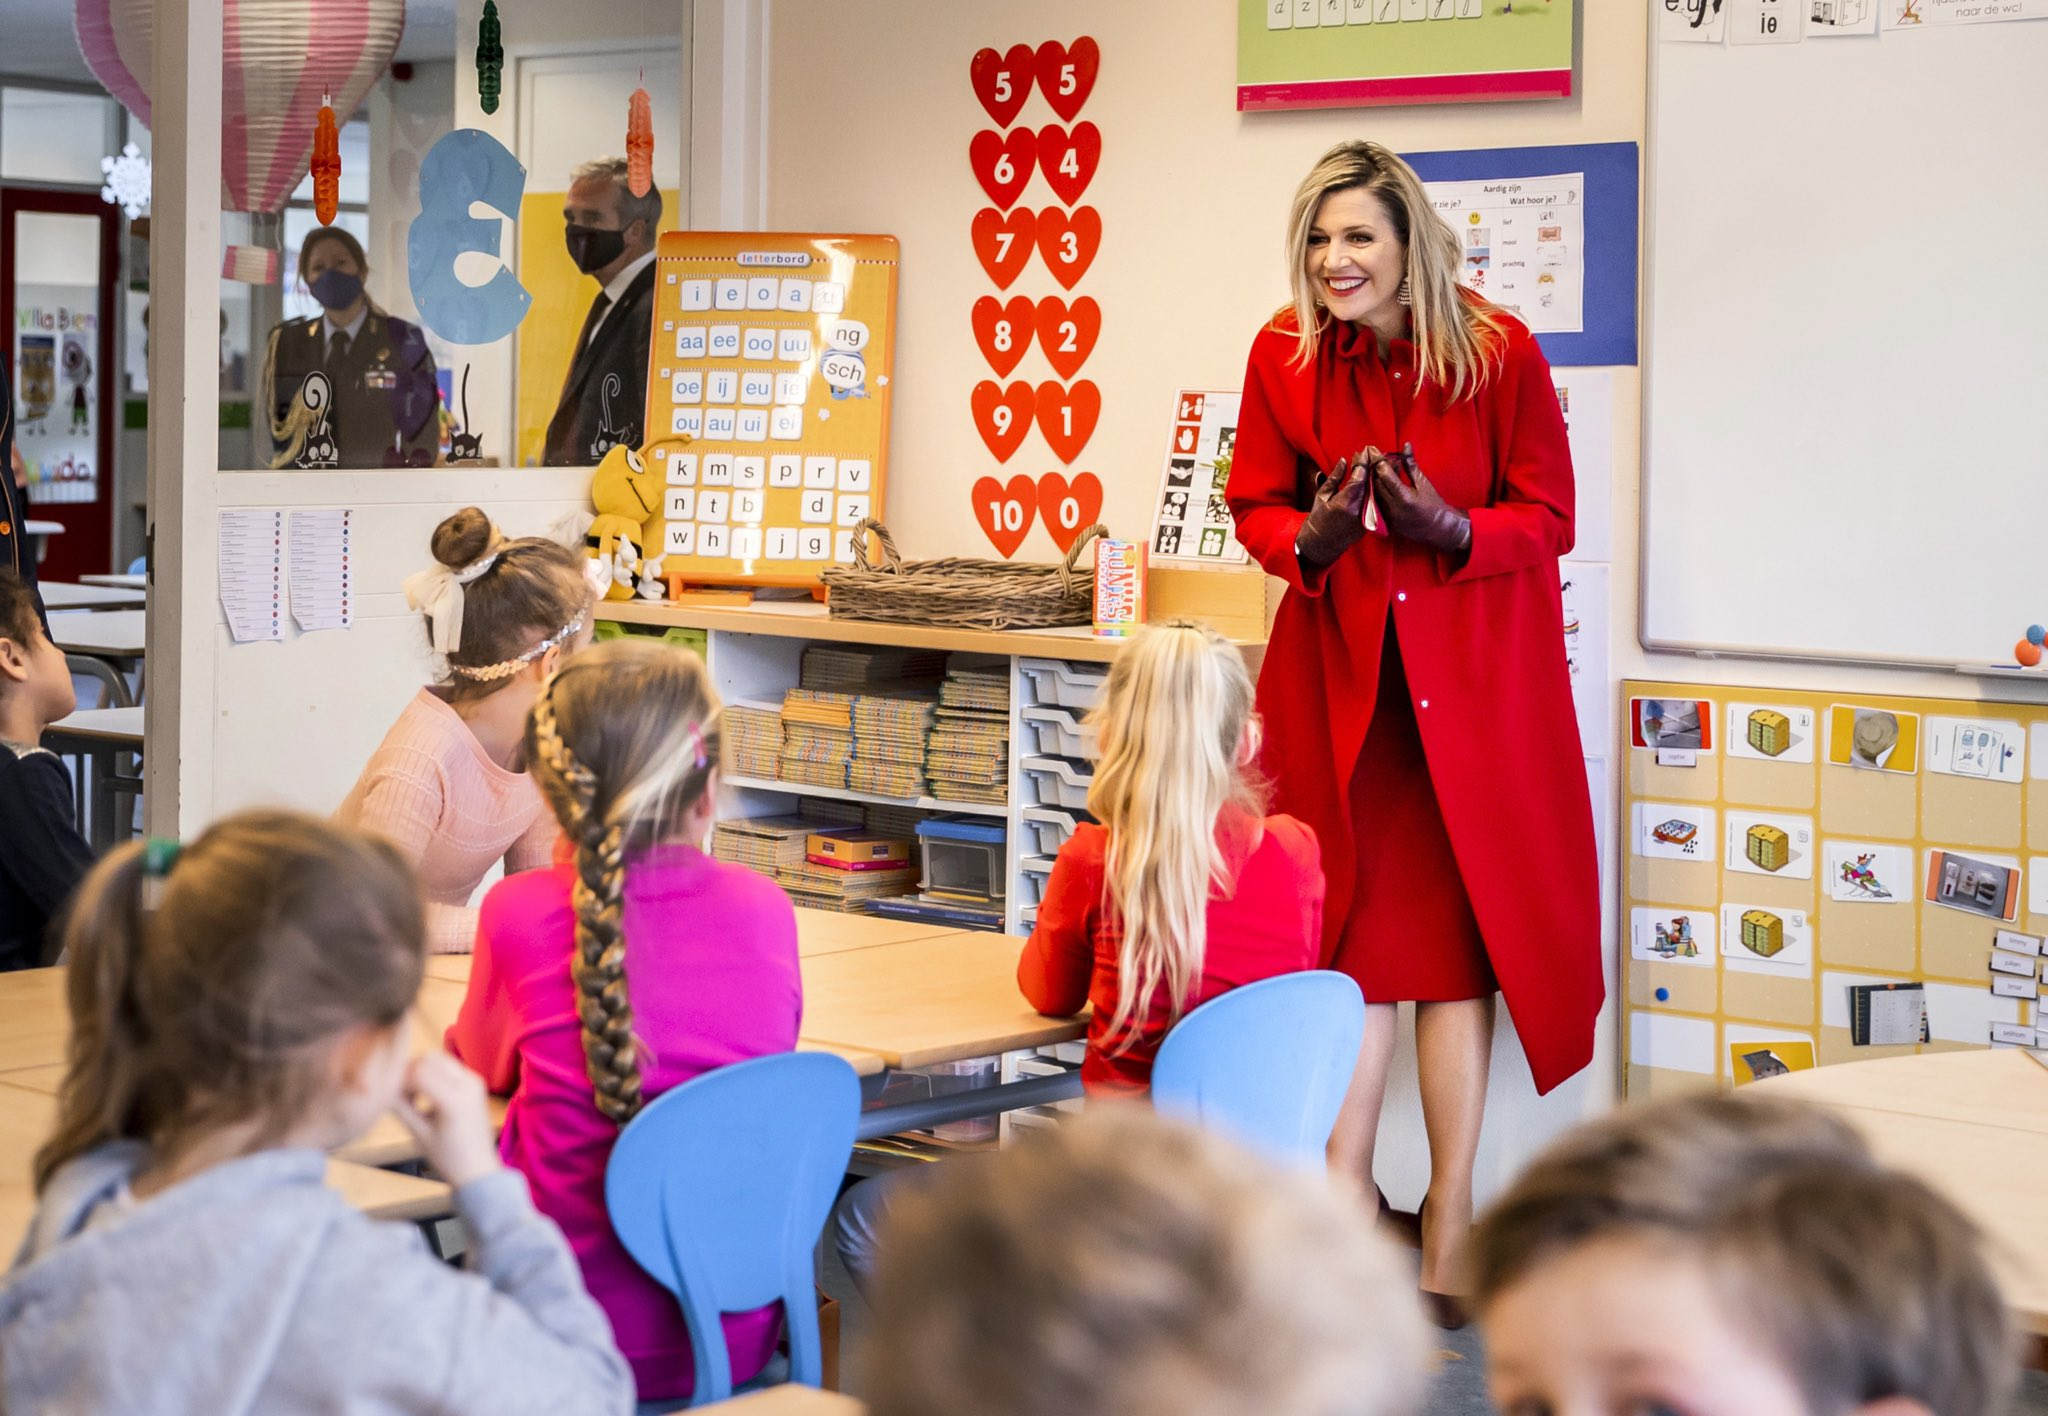 Queen Maxima in Red for a School visit